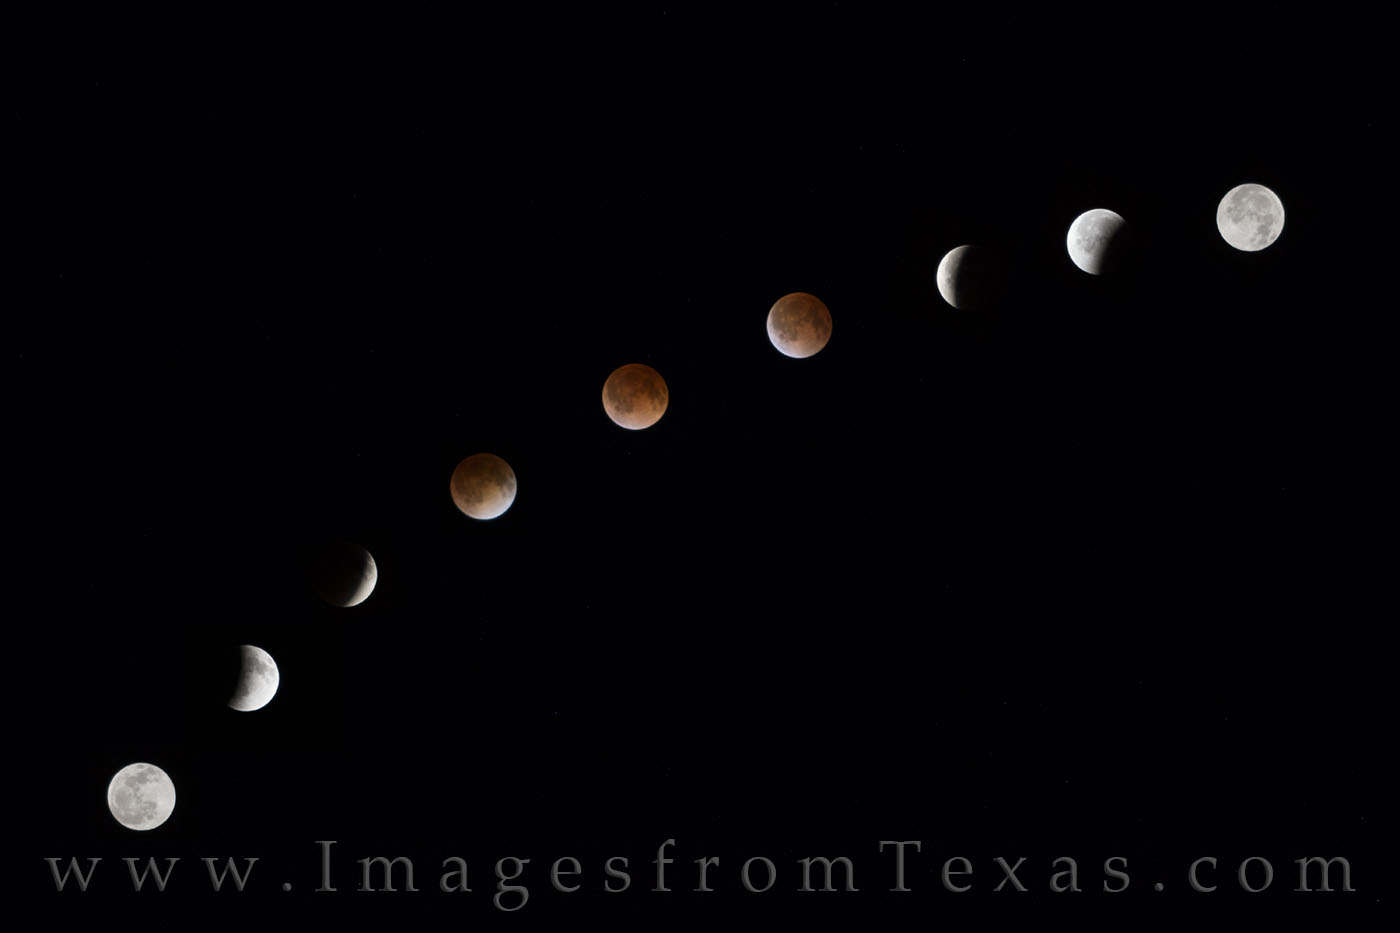 blood moon, blood moon images, blood moon austin, images from austin, images of austin, texas images, texas pictures, texas photos, blood moon pictures, blood moon phases, blood moon photos, blood moo